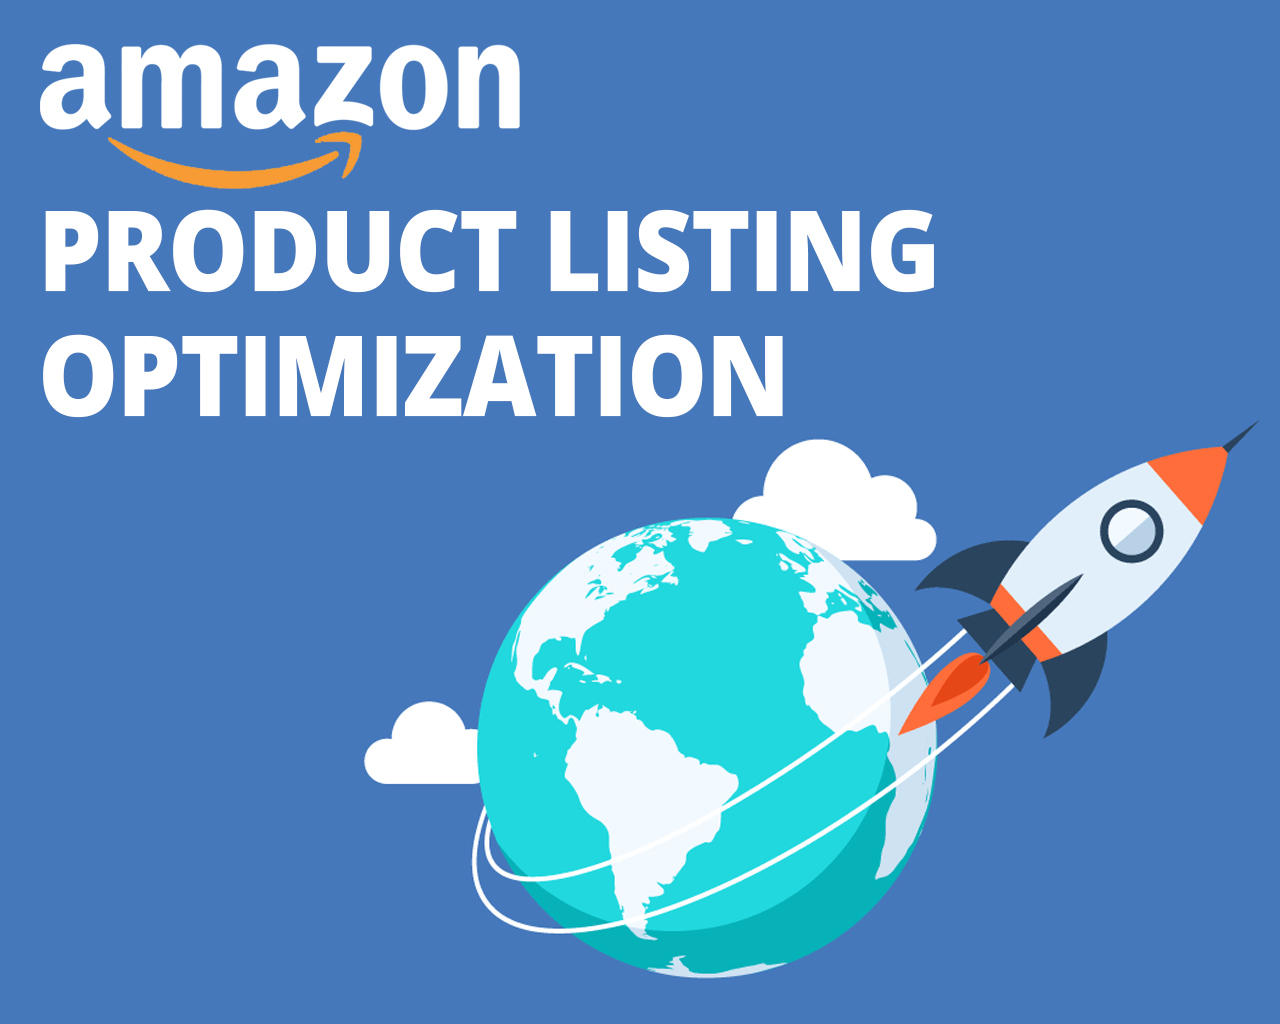 Optimize Amazon Product Listing by madridnyc - 106710